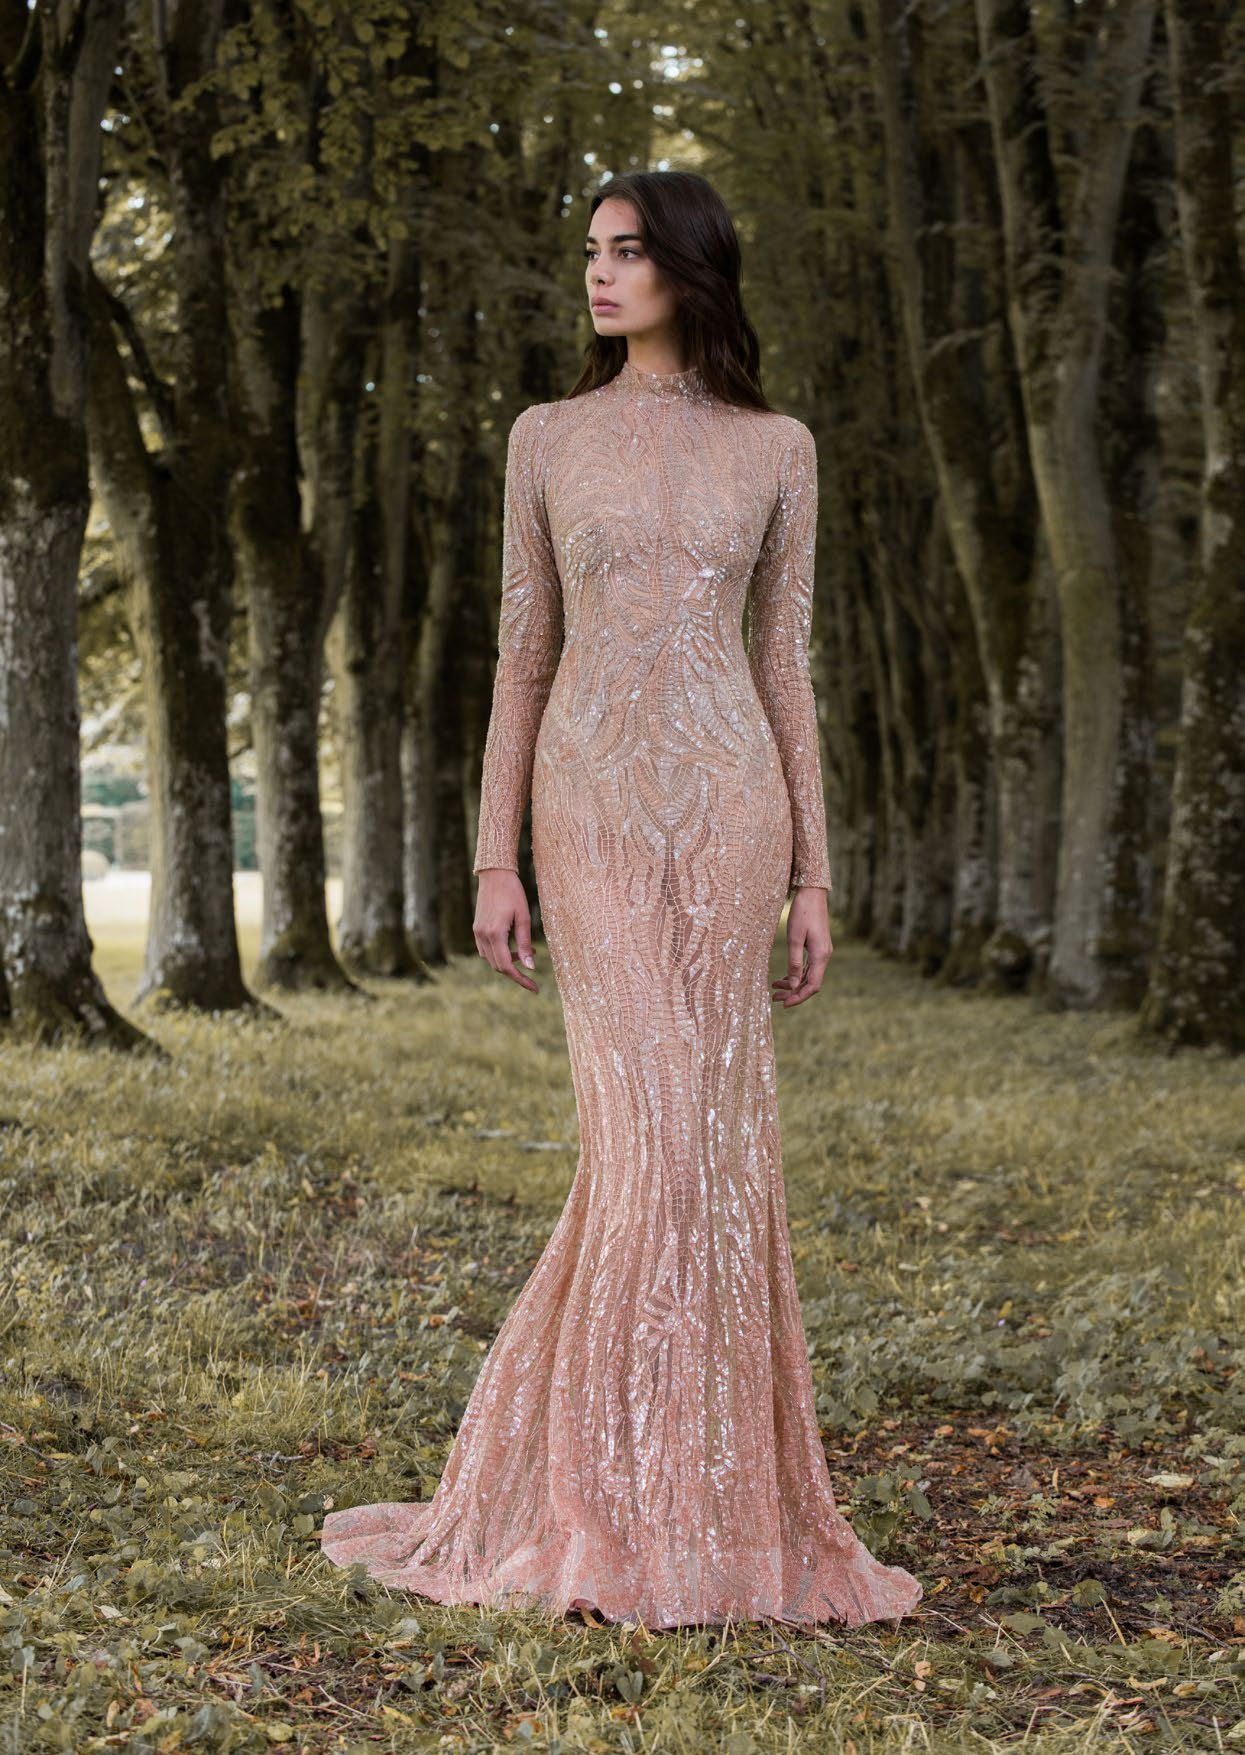 Rose gold gossamer winginspired long sleeved wedding dress by paolo